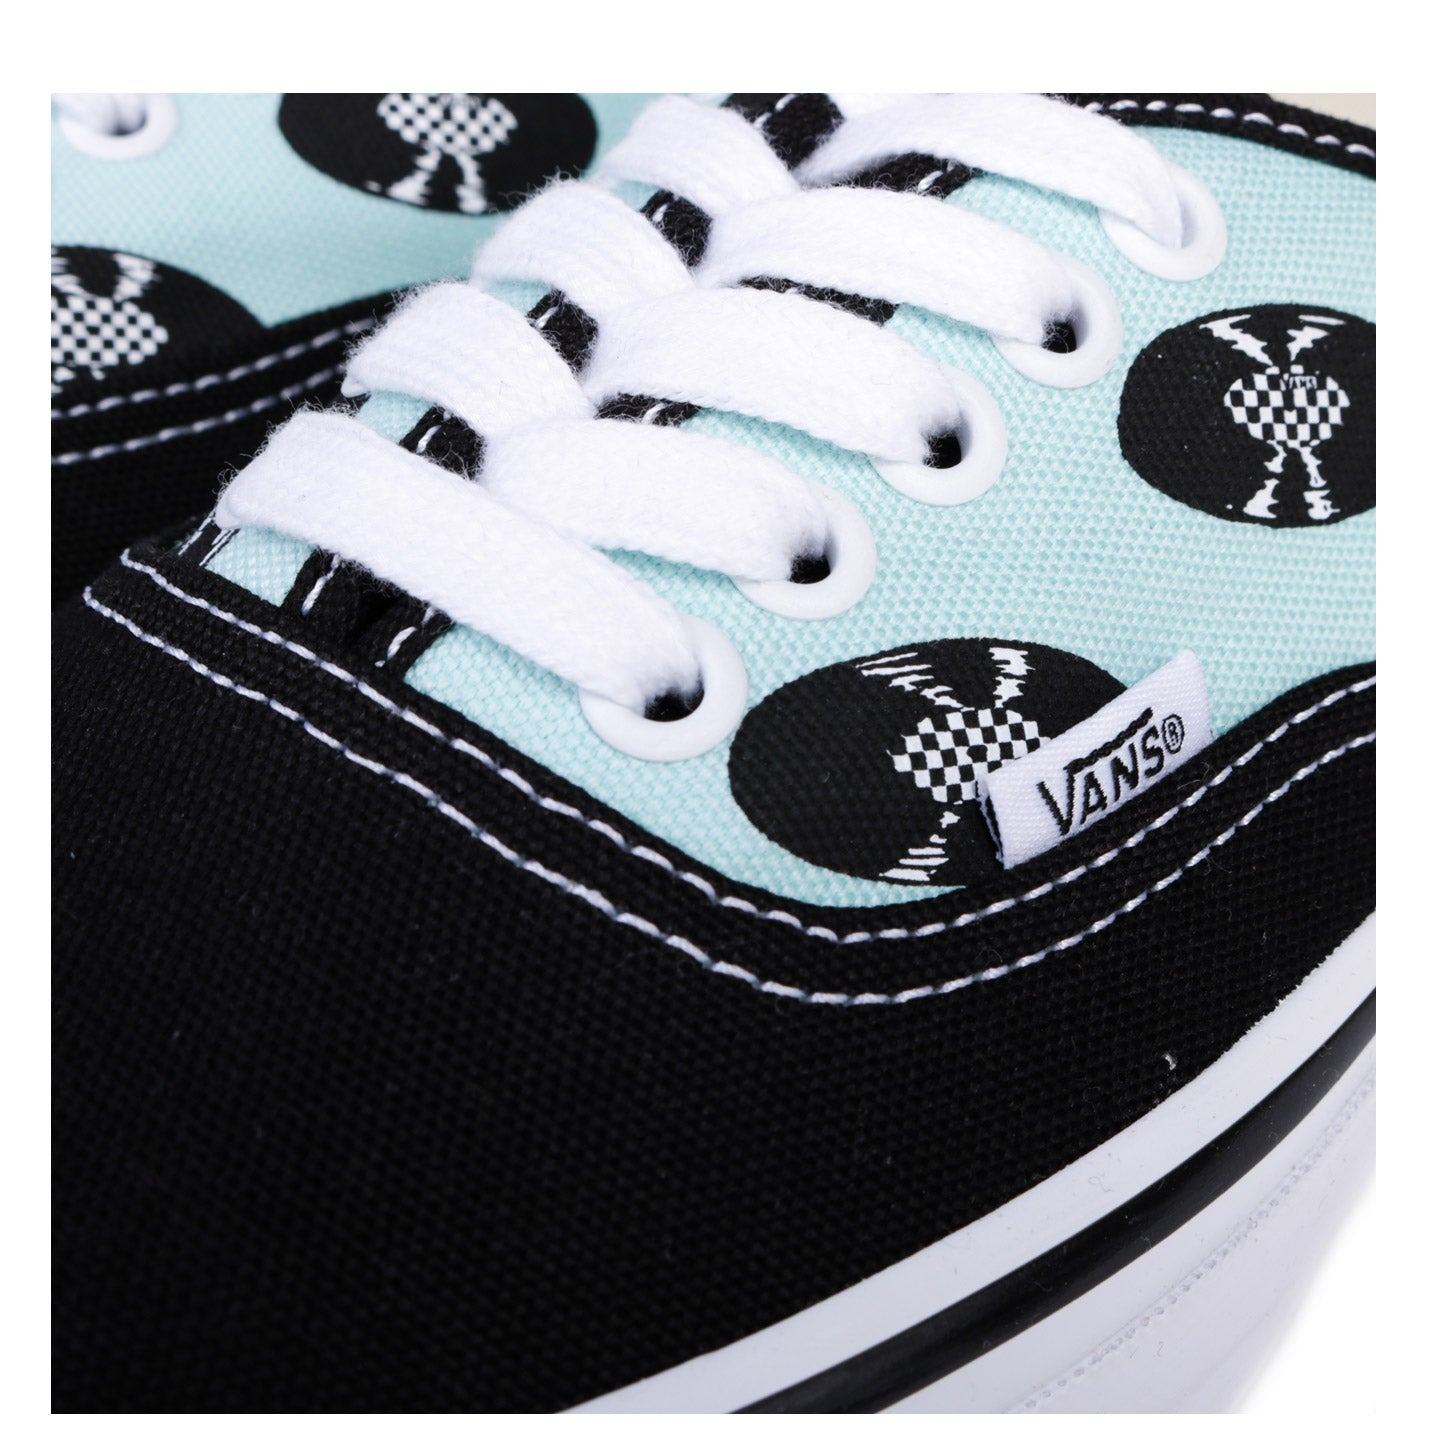 VAULT BY VANS OG AUTHENTIC LX WACKO MARIA BABY BLUE / RECORDS